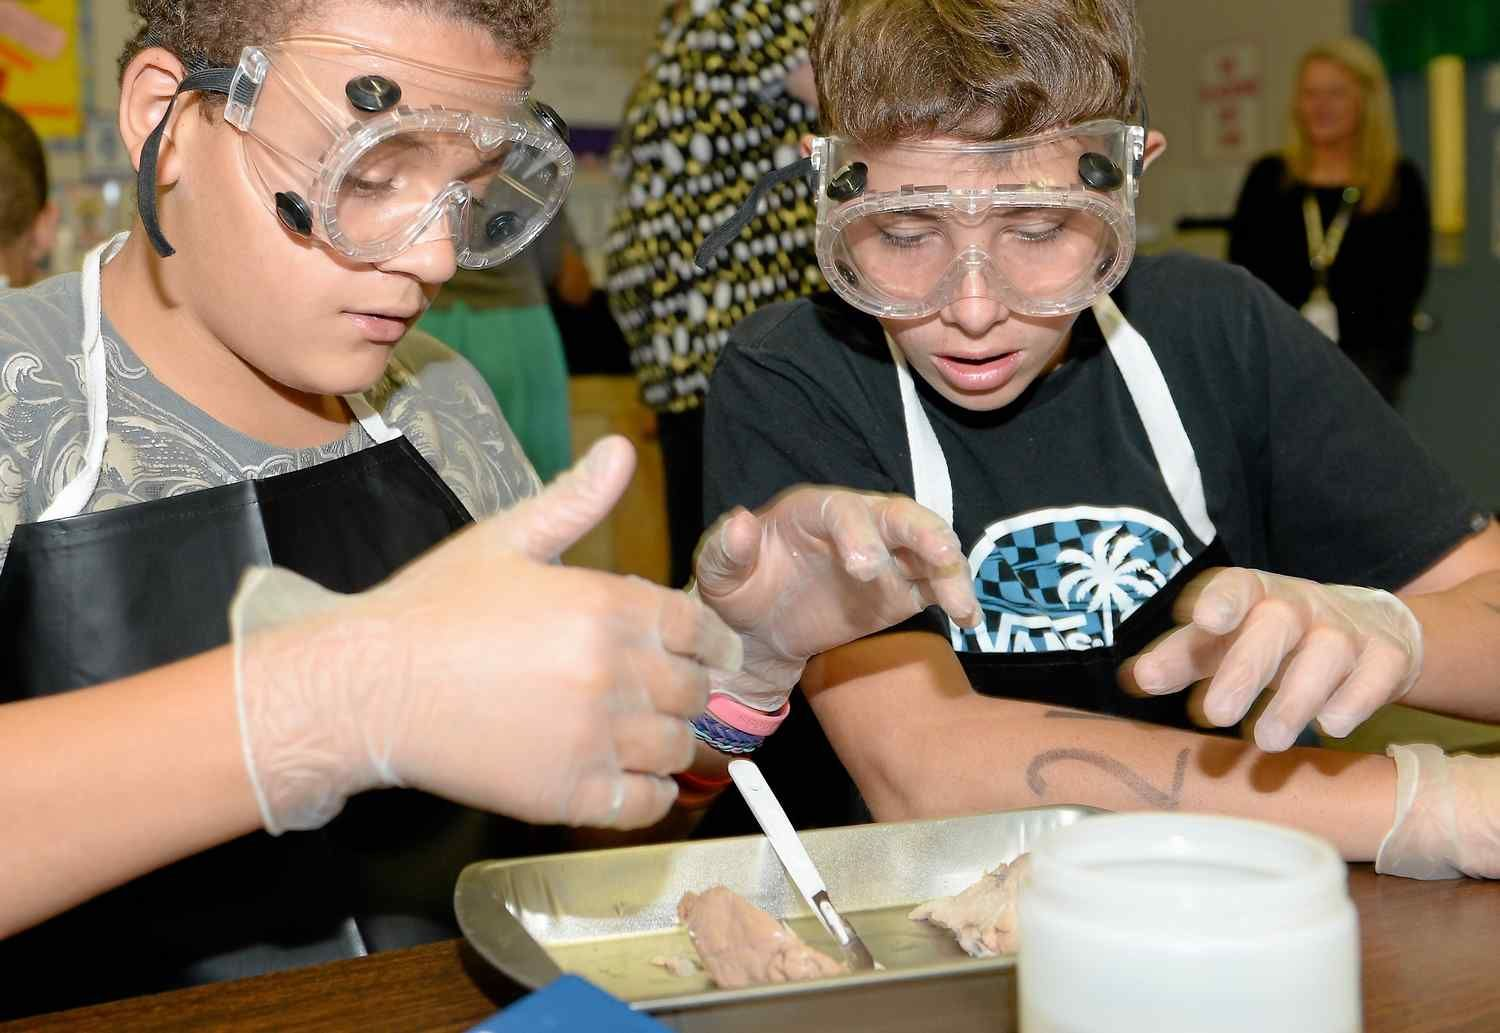 """A California junior-high school this year launched a """"Medical Detectives"""" class to introduce students to forensic science. The popular class allows students to participate in exercises, such as dissections and collection of DNA to simulate the work done by doctors and investigators"""